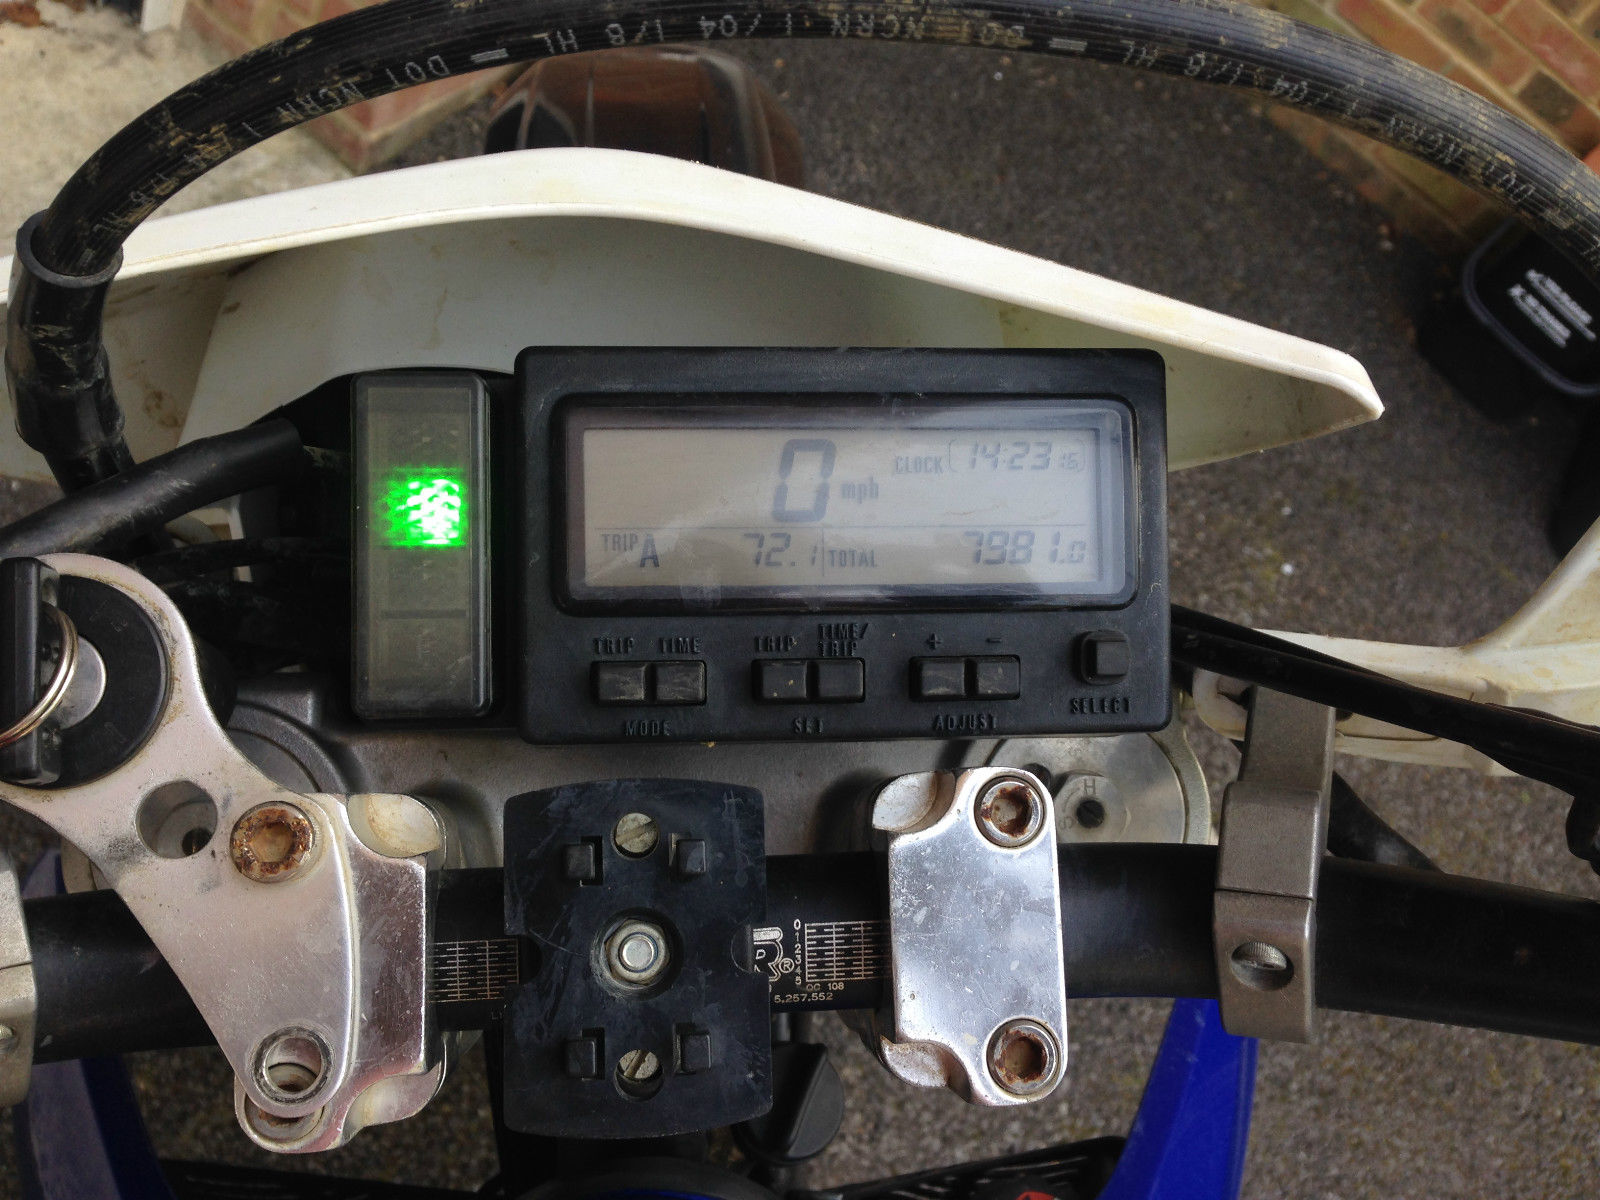 Drz 400 Service Manual  Stunning Honda Service Manuals With